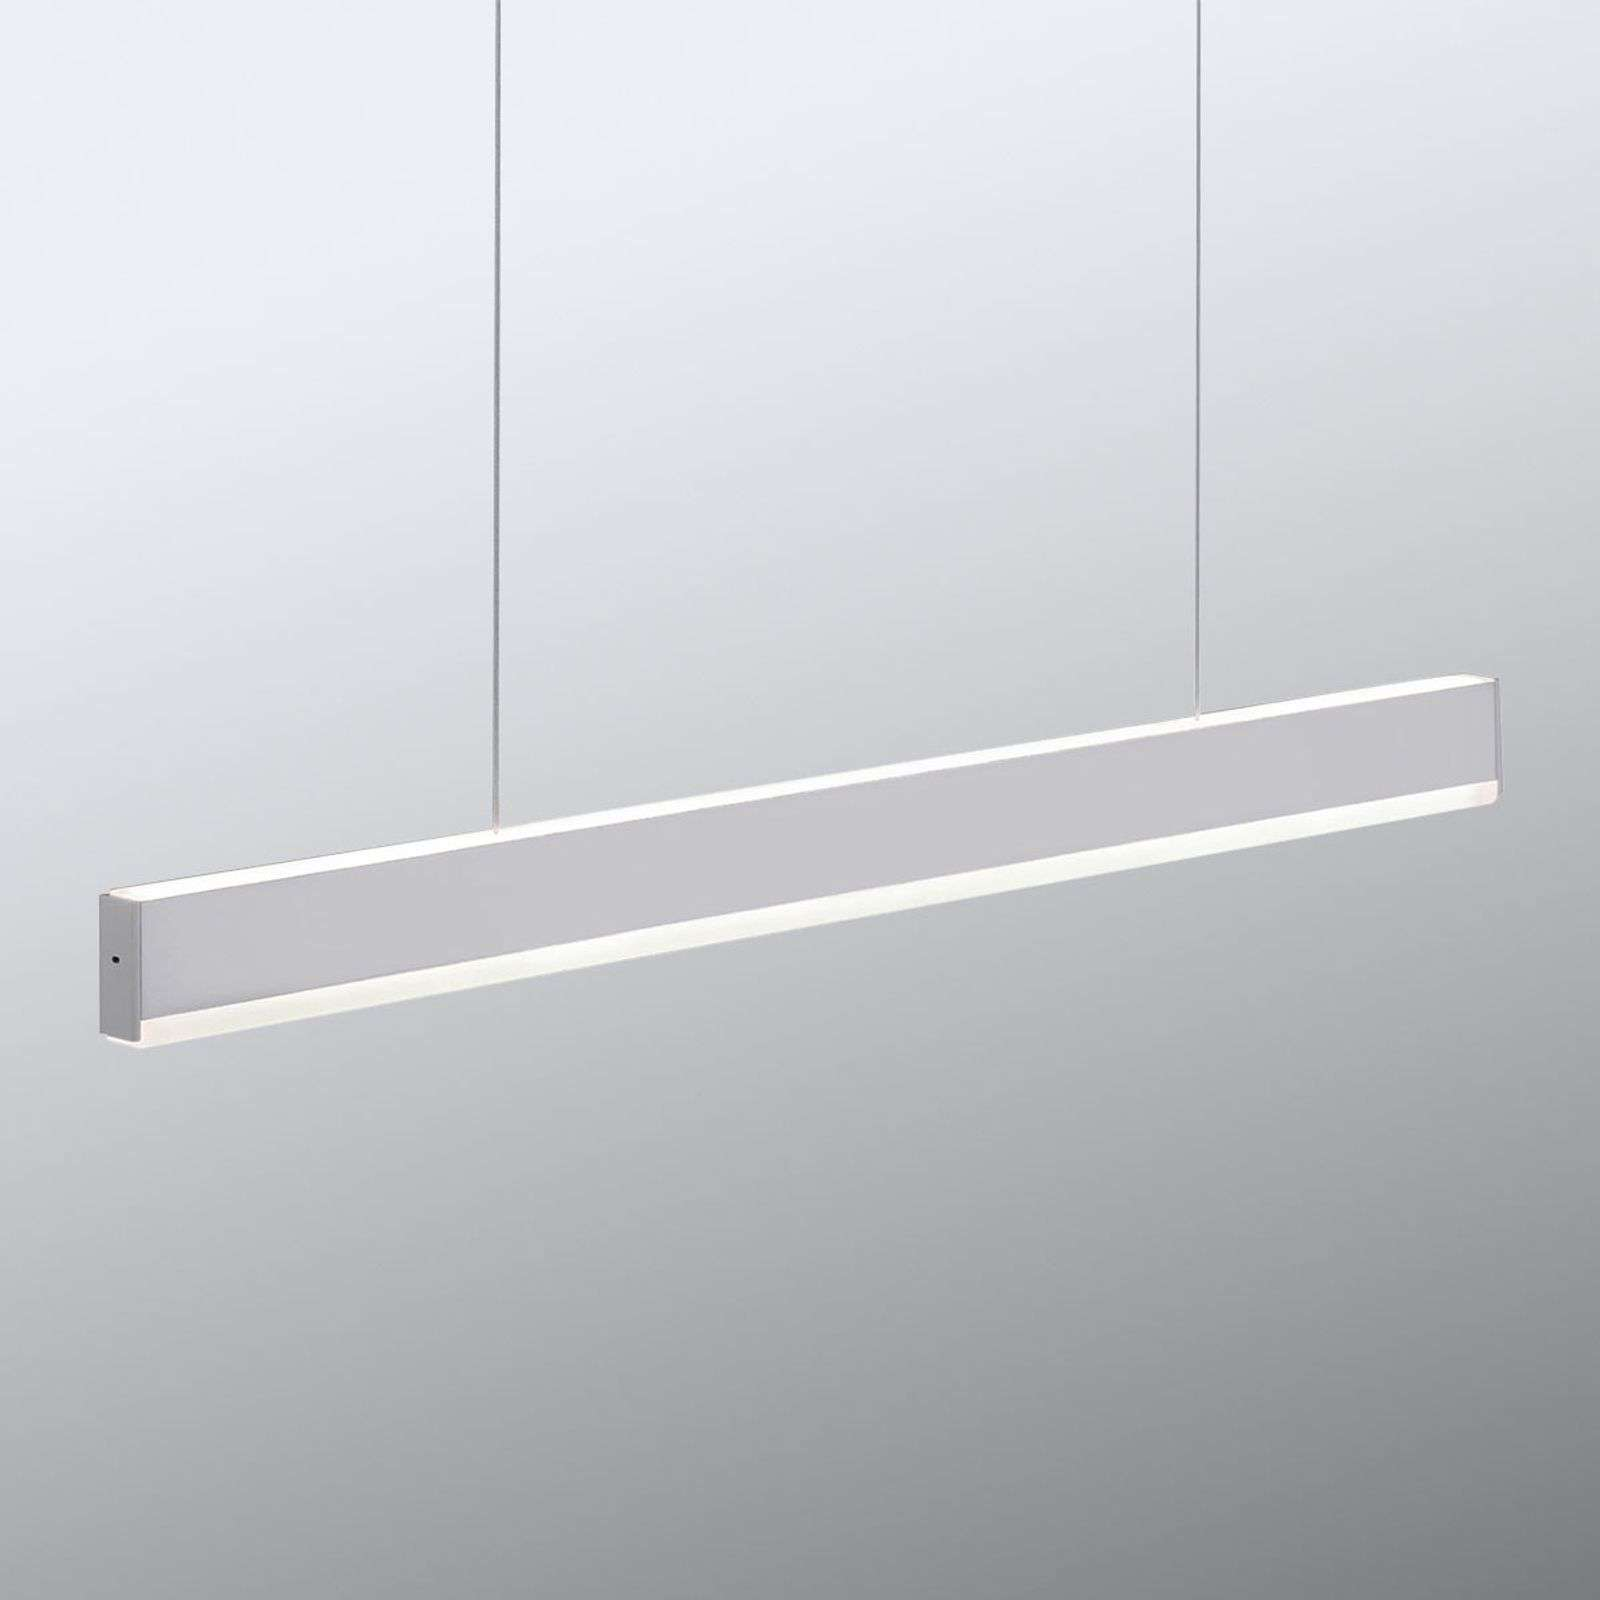 Suspension LED dimmable Arina - longueur 100 cm